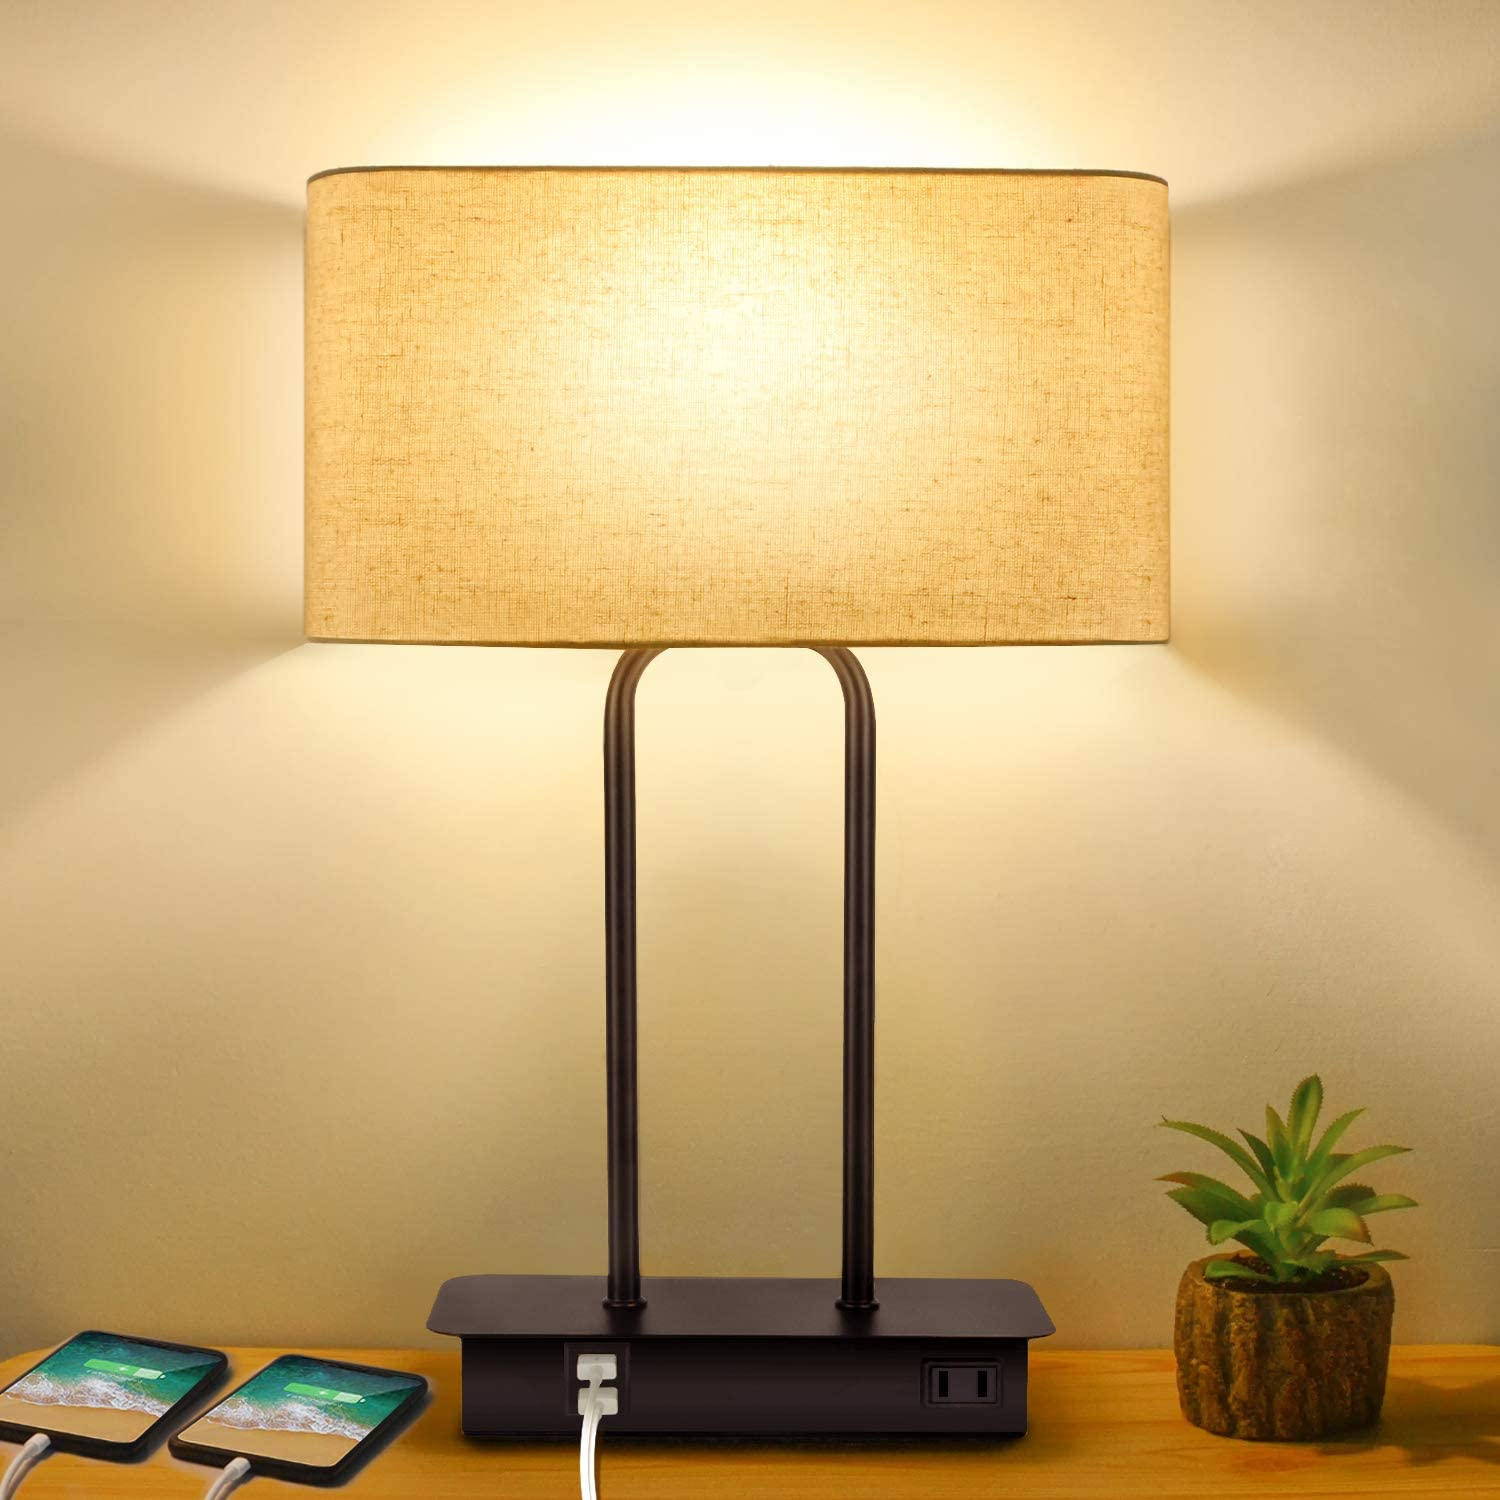 3-Way Dimmable Touch Control Table Lamp with 2 USB Ports and AC Power Outlet Modern Bedside Nightstand Lamp with Fabric Shade and Metal Base for Guestroom Bedroom Living Room & Hotel LED Bulb Included